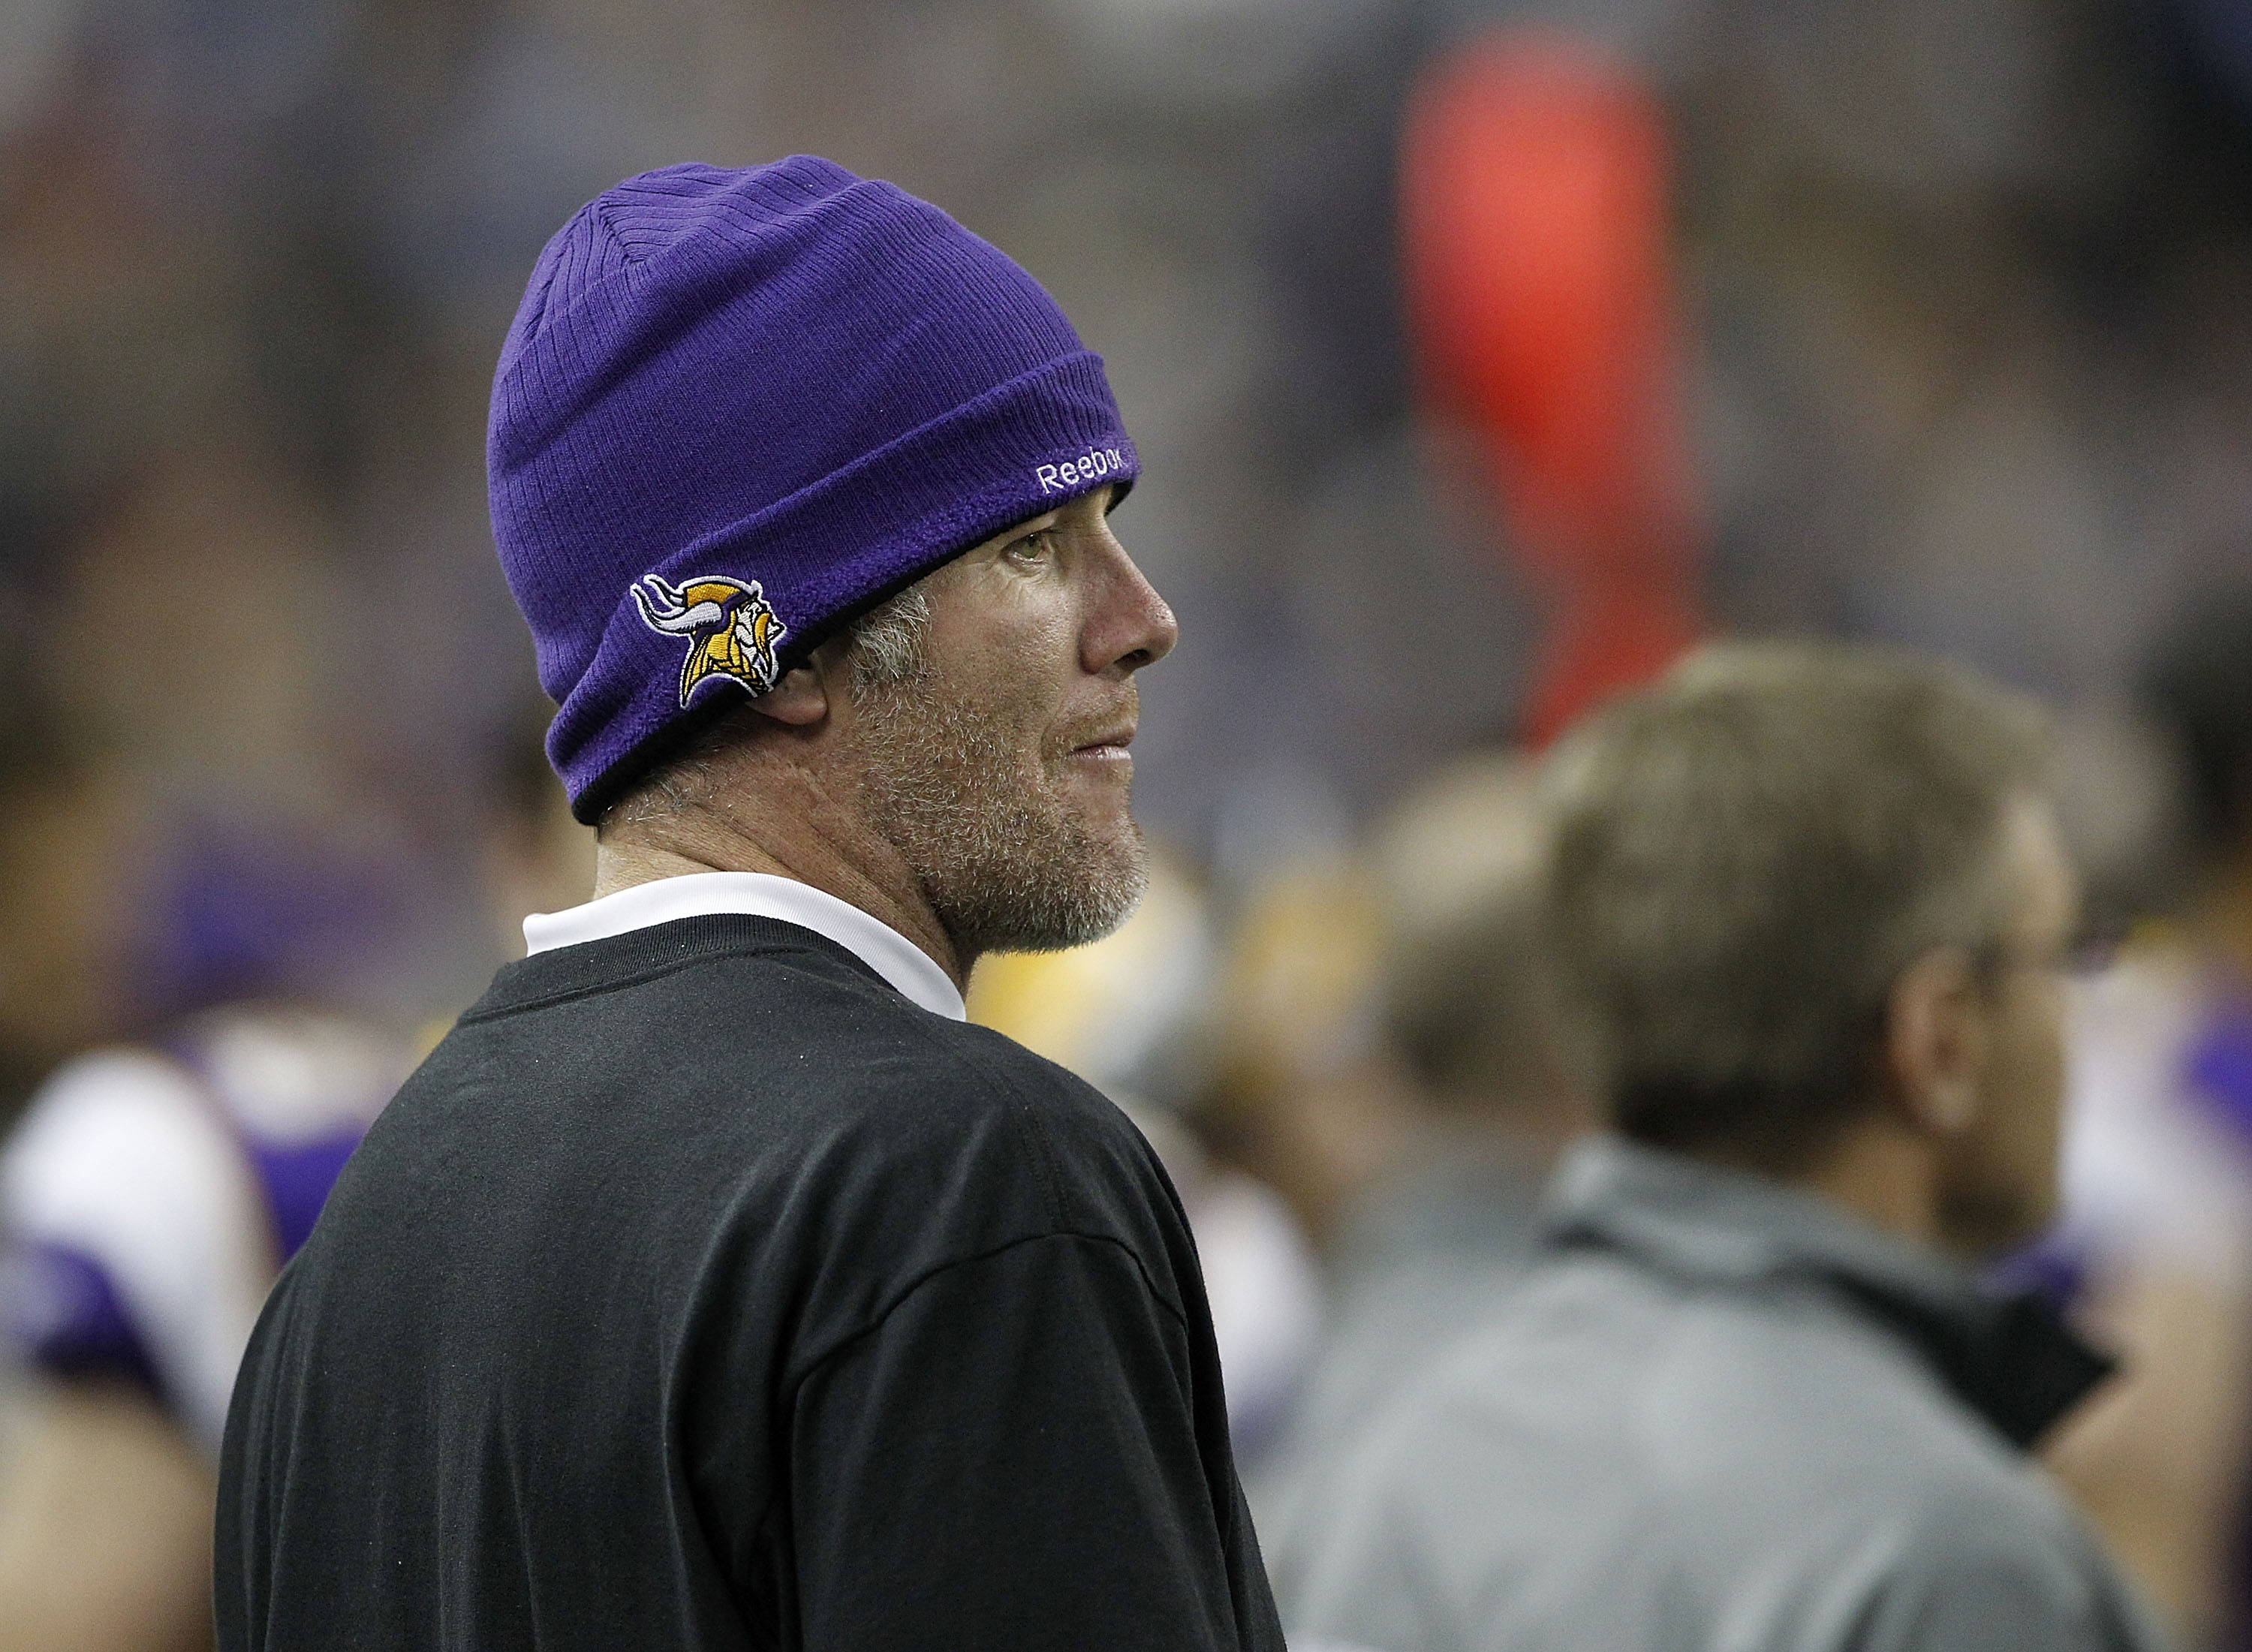 Quarterback Brett Favre #4 of the Minnesota Vikings watches the action during the game against the New York Giants at Ford Field on December 13, 2010 in Detroit, Michigan. The Giants defeated the Vikings 21-3. (Photo by Leon Halip/Getty Images)